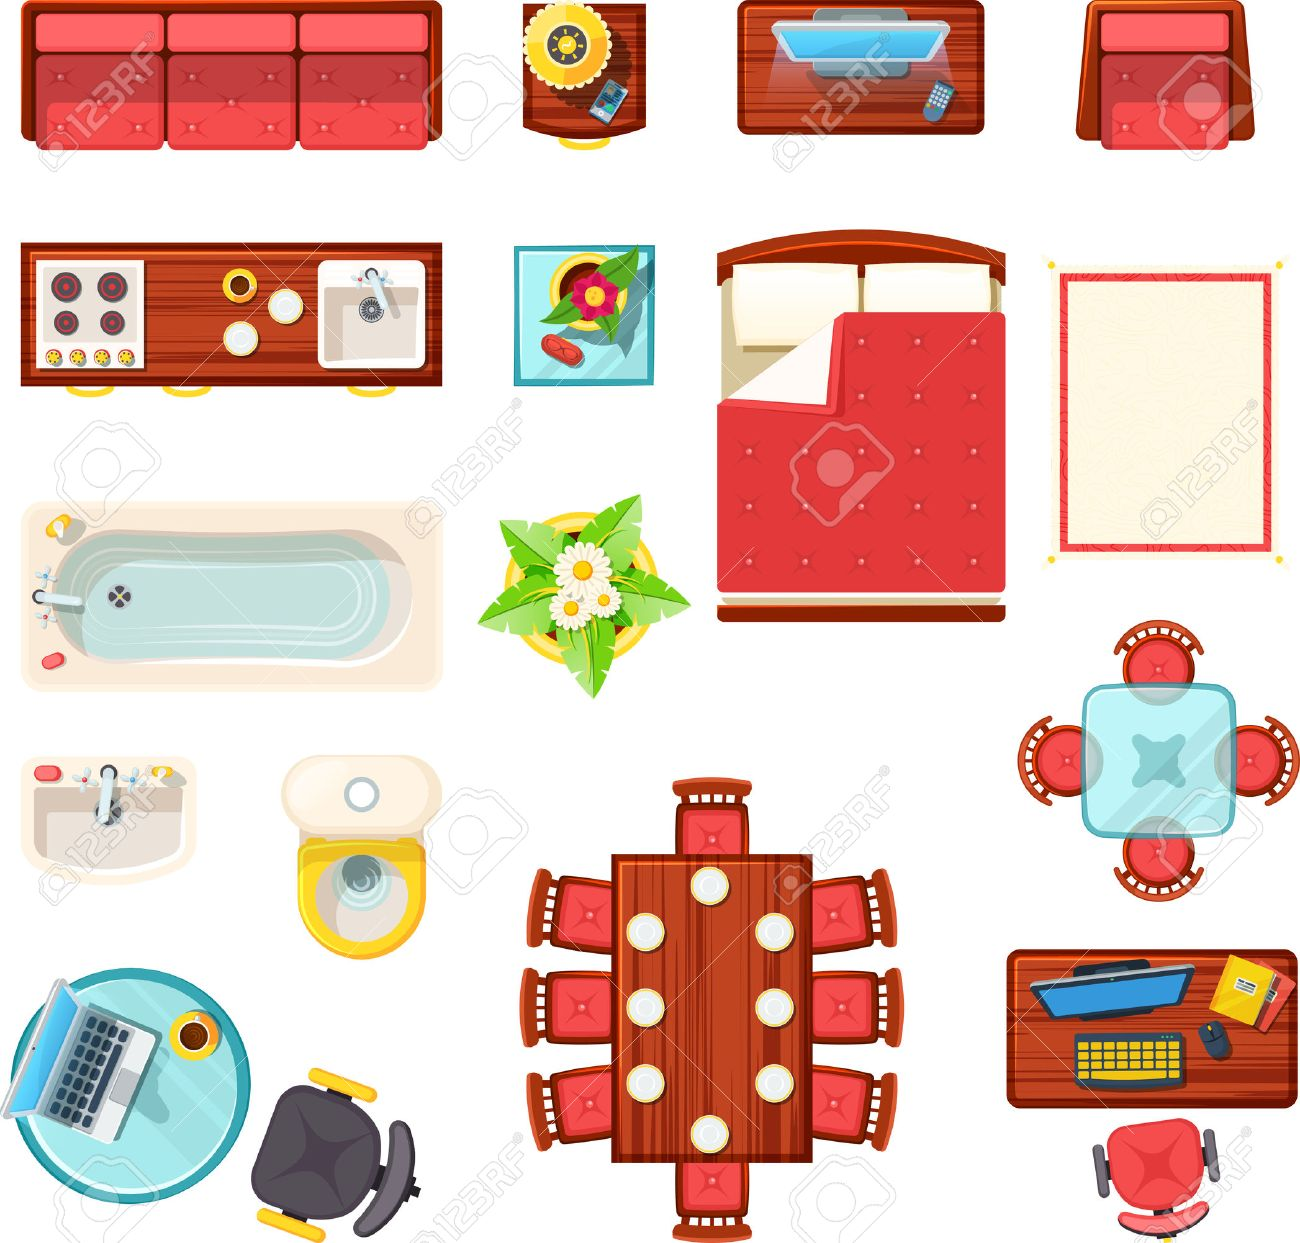 Home Furniture Top View Set With Bath Table And Bed Flat Isolated Vector Illustration Stock